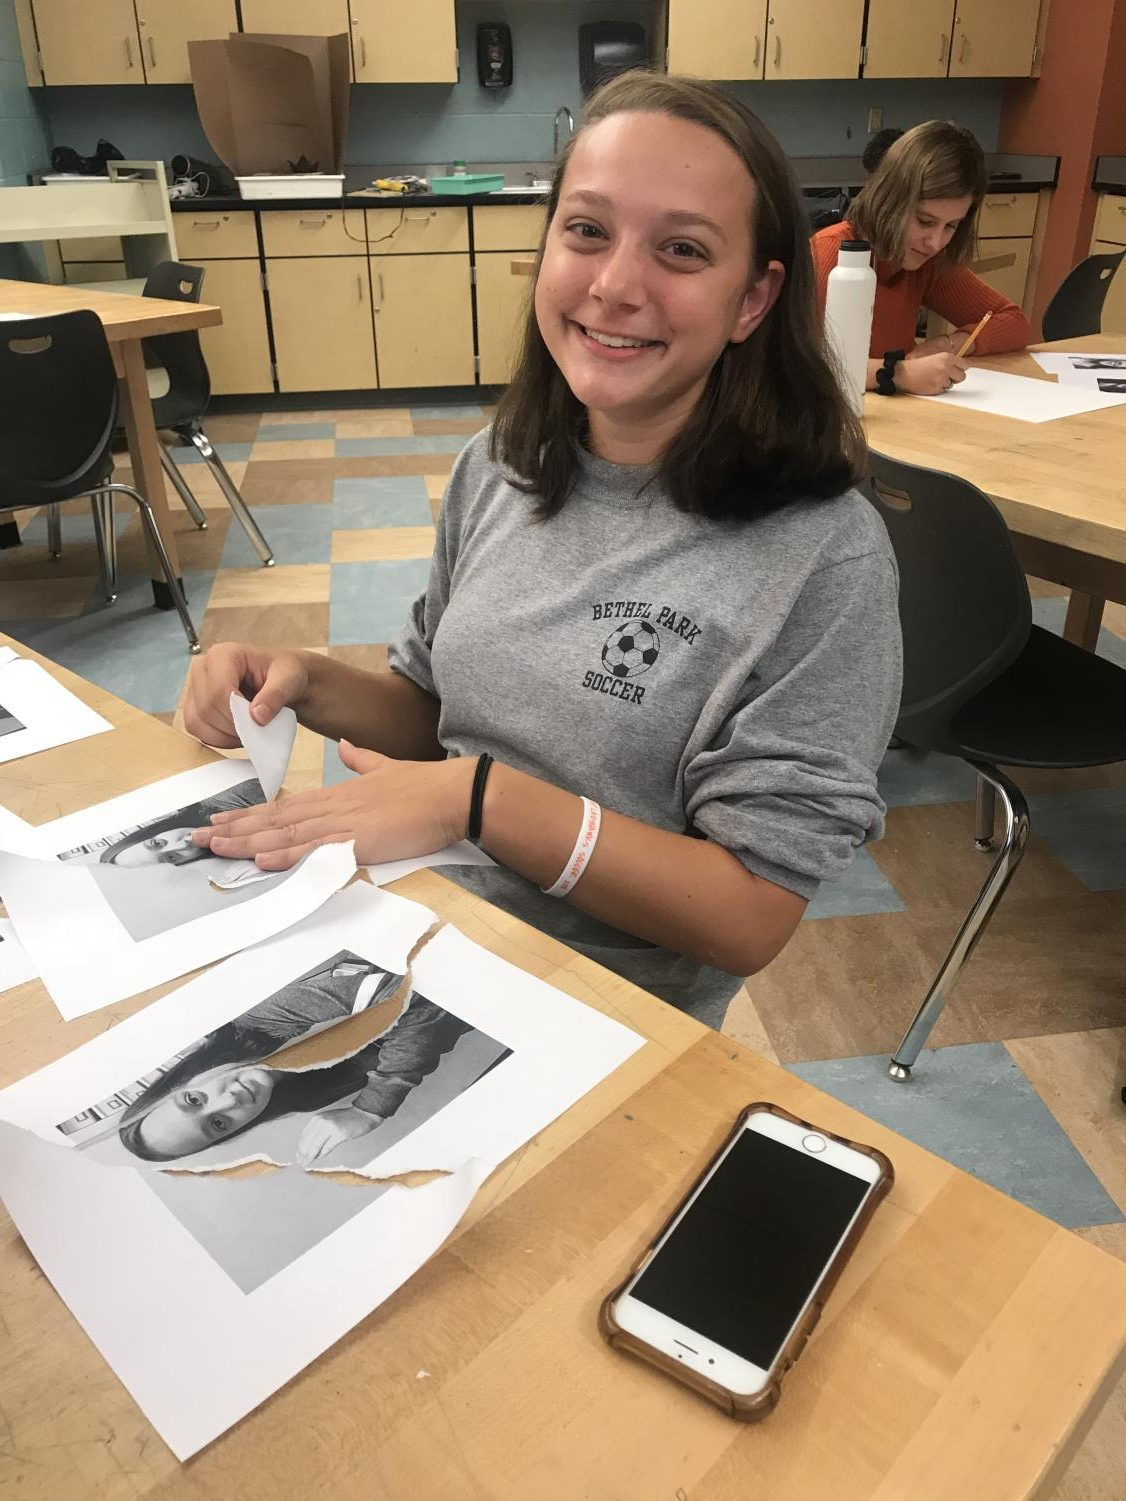 Sophia Galietta is all smiles at her work desk in the art room.